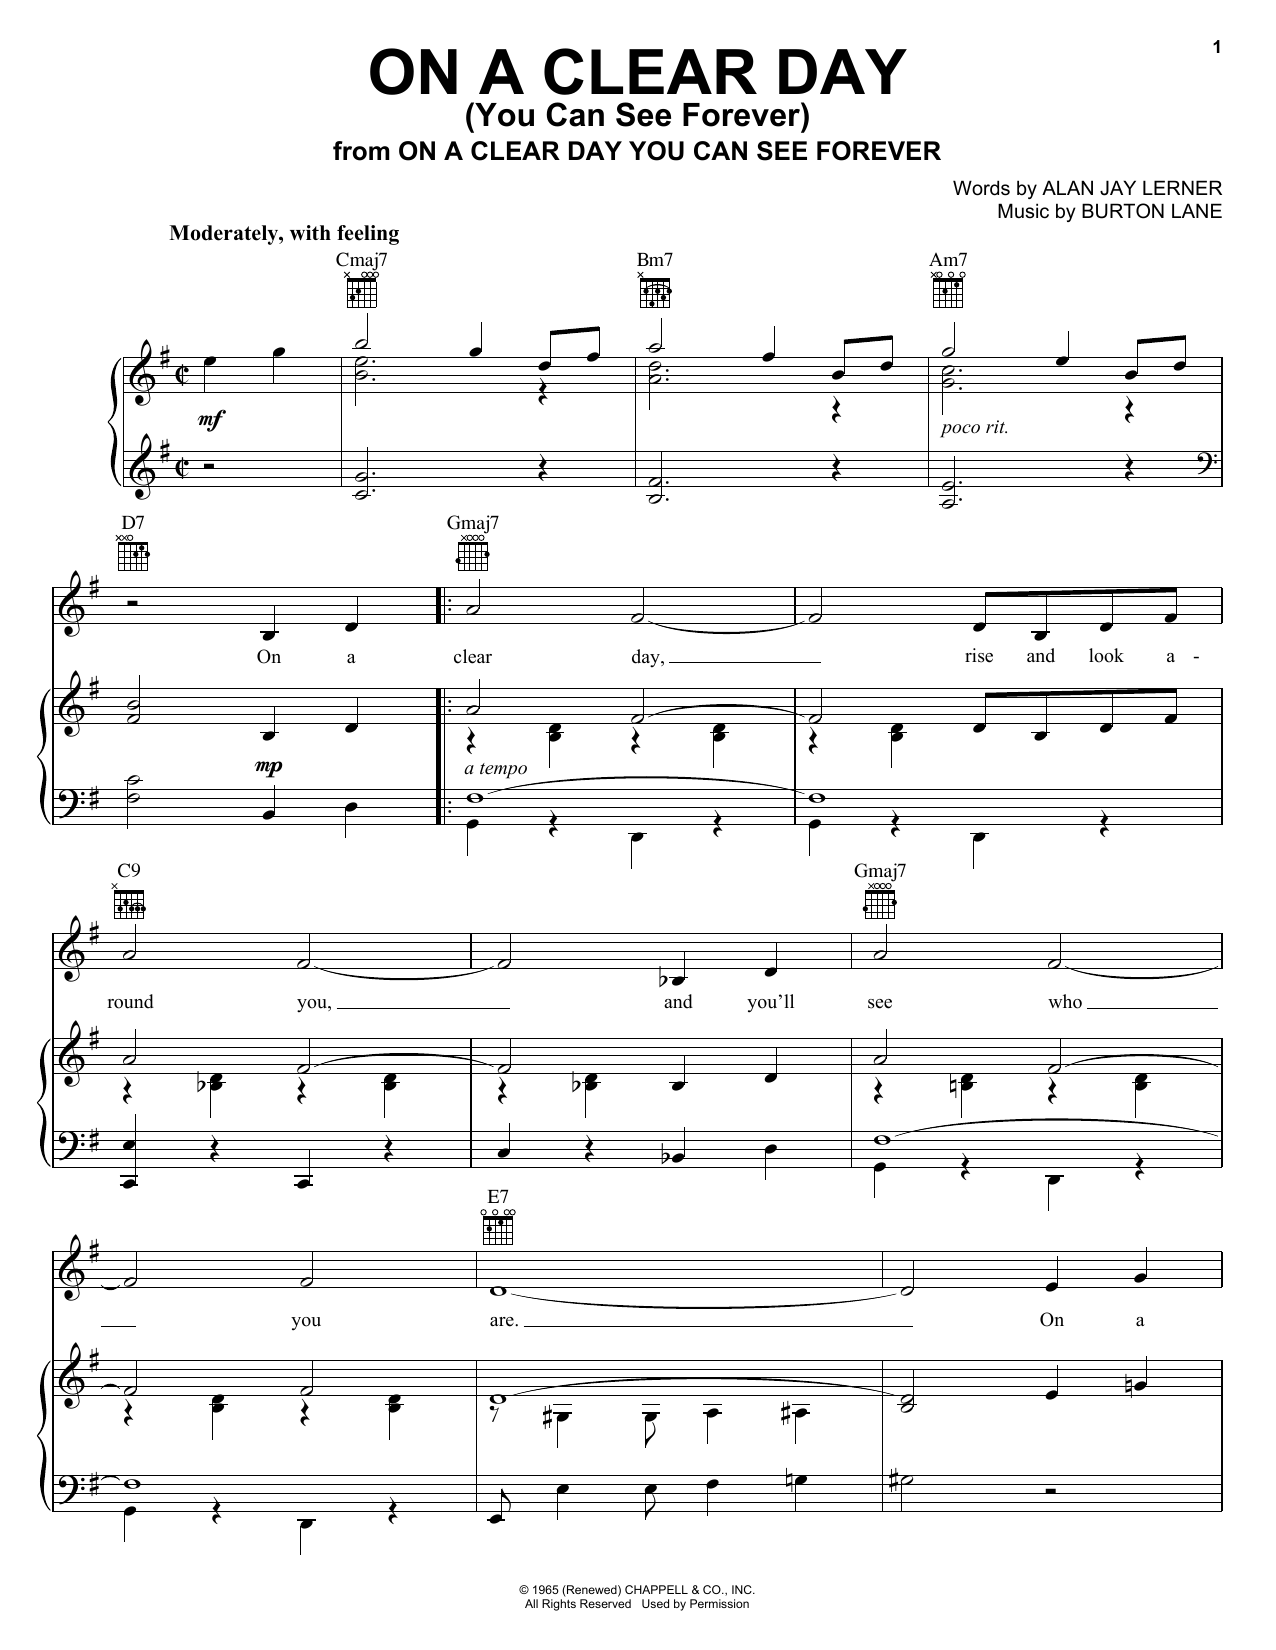 Frank Sinatra On A Clear Day (You Can See Forever) sheet music notes printable PDF score